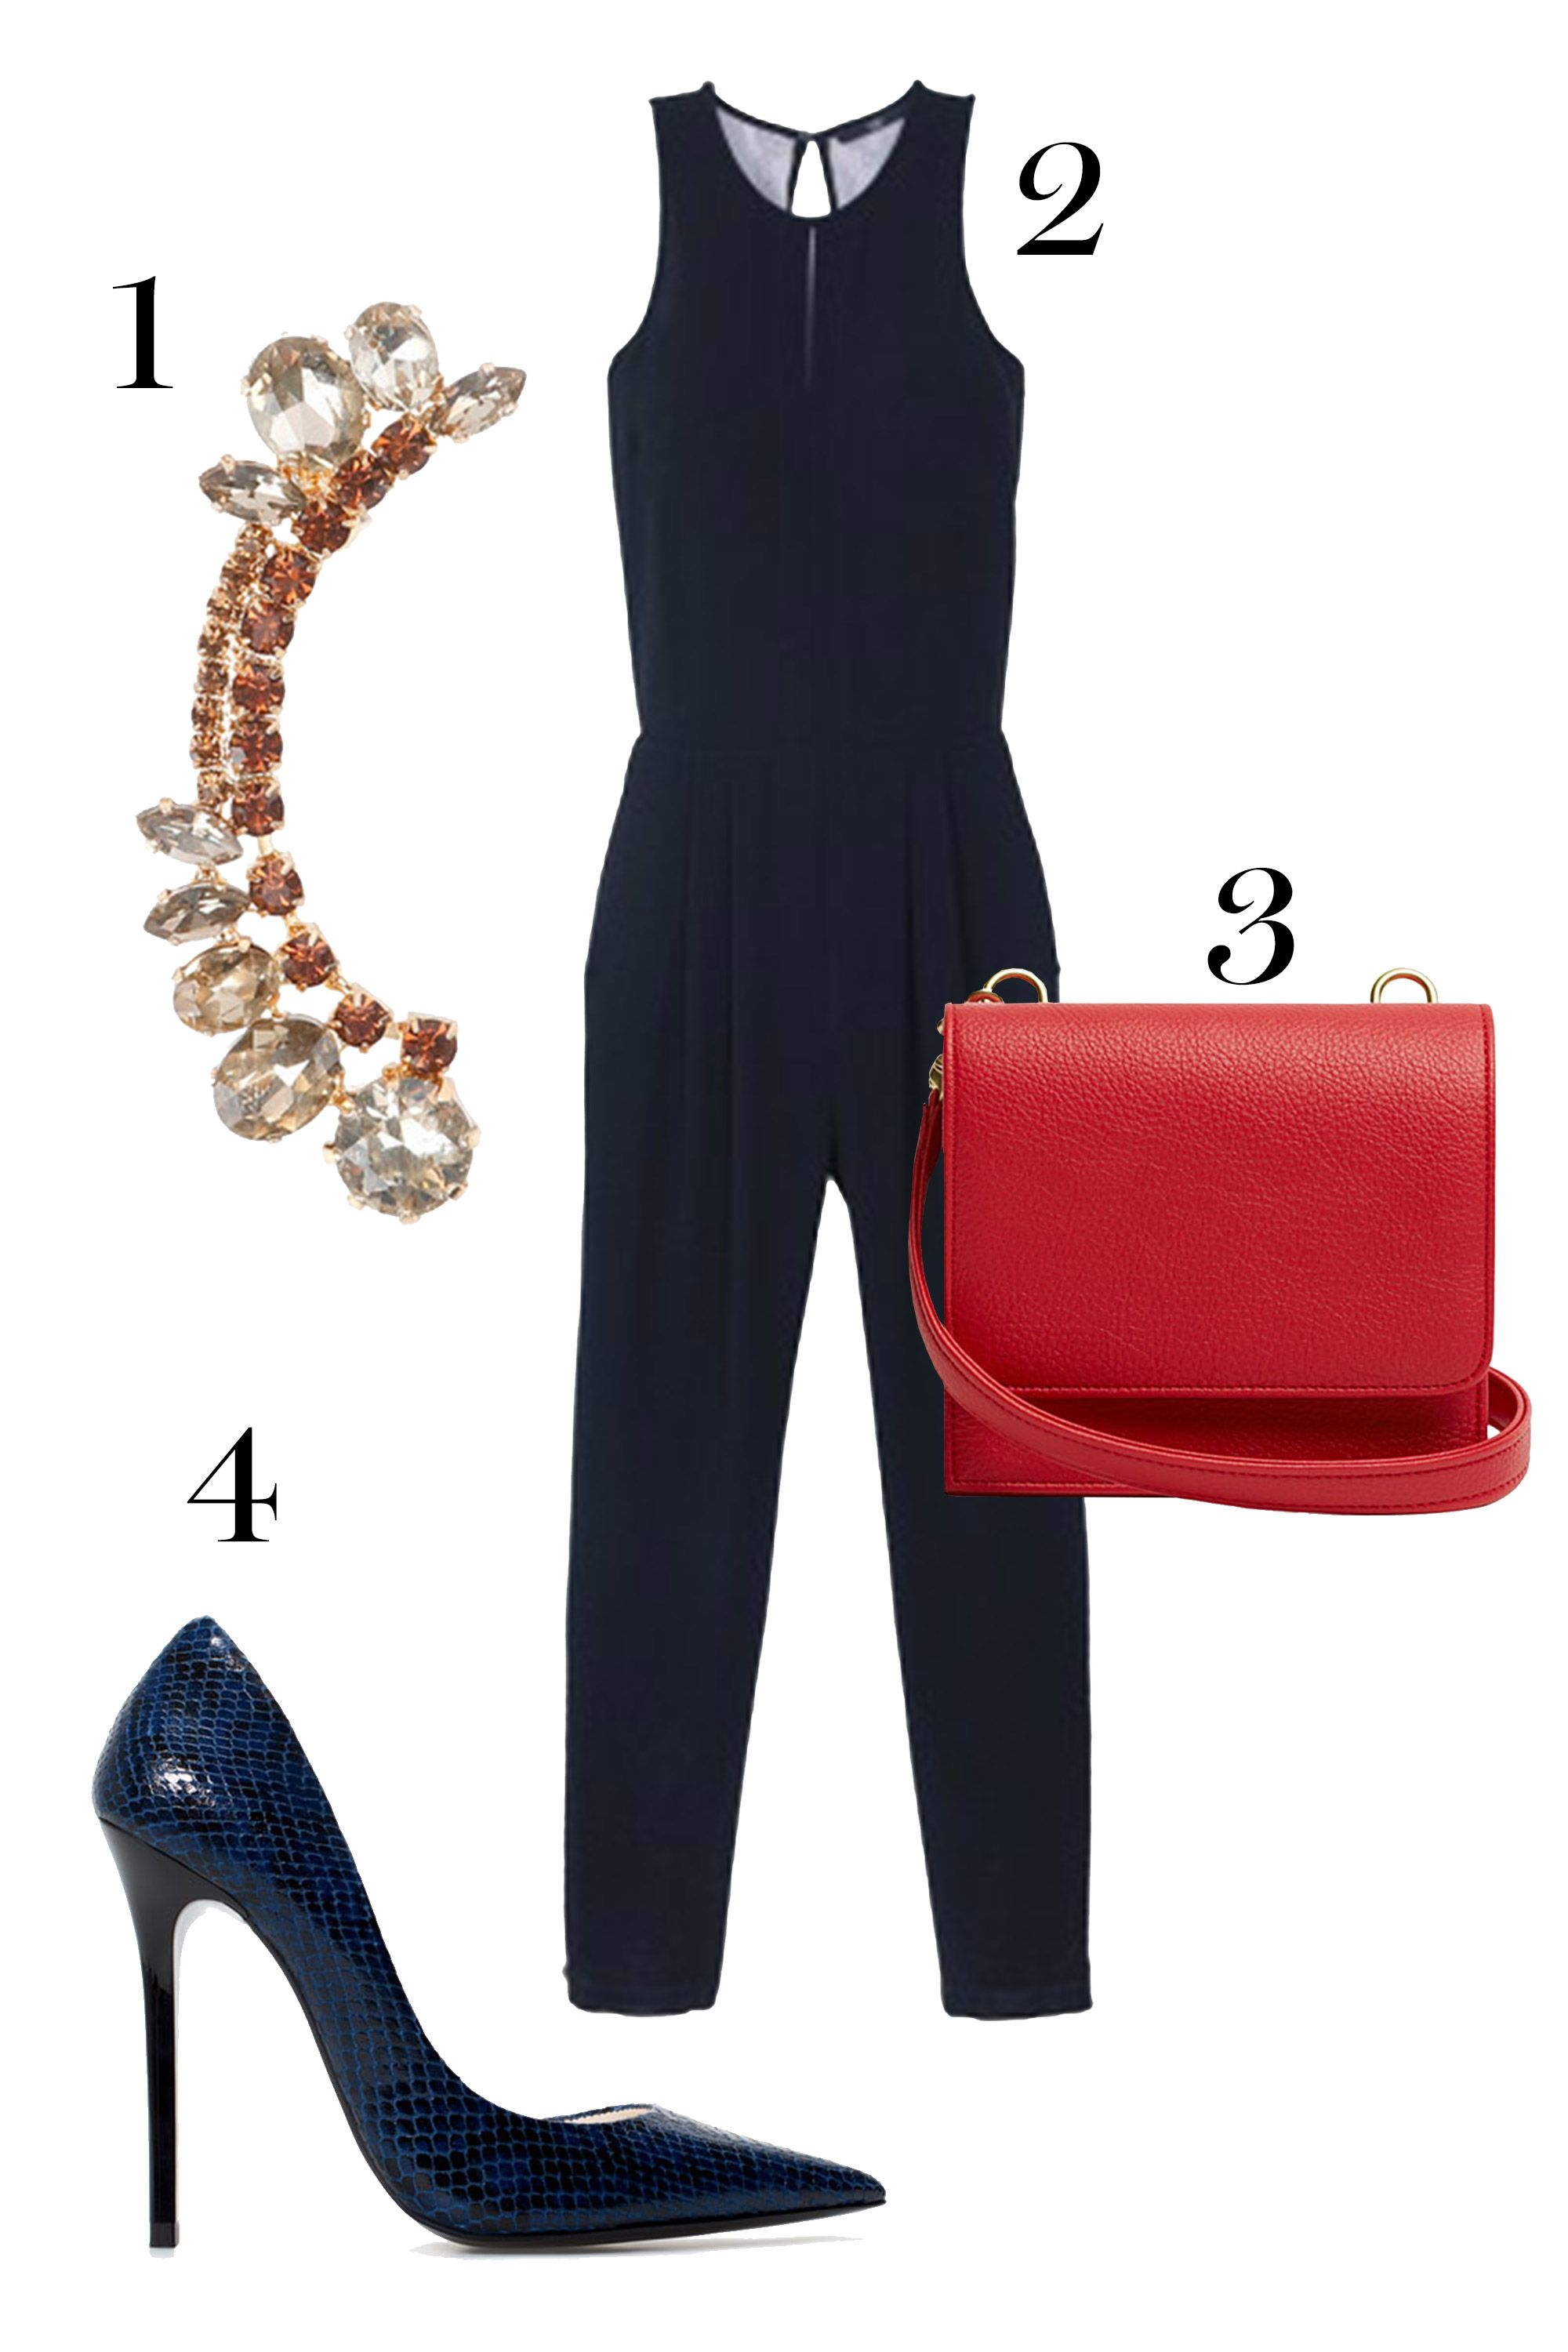 """1. Rue Gembon ear cuff, $70;<a href=""""http://www.ruegembon.com/products/zoey"""">ruegembon.com.</a>  2.Tibi jumpsuit, $495; <a href=""""http://www.tibi.com/shop/features/what-to-wear-for-the-holidays/ringing-in-the-new-year/arden-crepe-lace-jumpsuit"""">tibi.com.</a>  3. Freedom of Animals bag, $200,<a href=""""http://freedomofanimals.com/collections/bag/products/melia-pia-1"""">freedomofanimals.com.</a>  4.Zara heels, $119;<a href=""""http://www.zara.com/us/en/woman/shoes/high-heels/printed-leather-court-shoes-c269195p2195527.html""""> zara.com.</a>"""